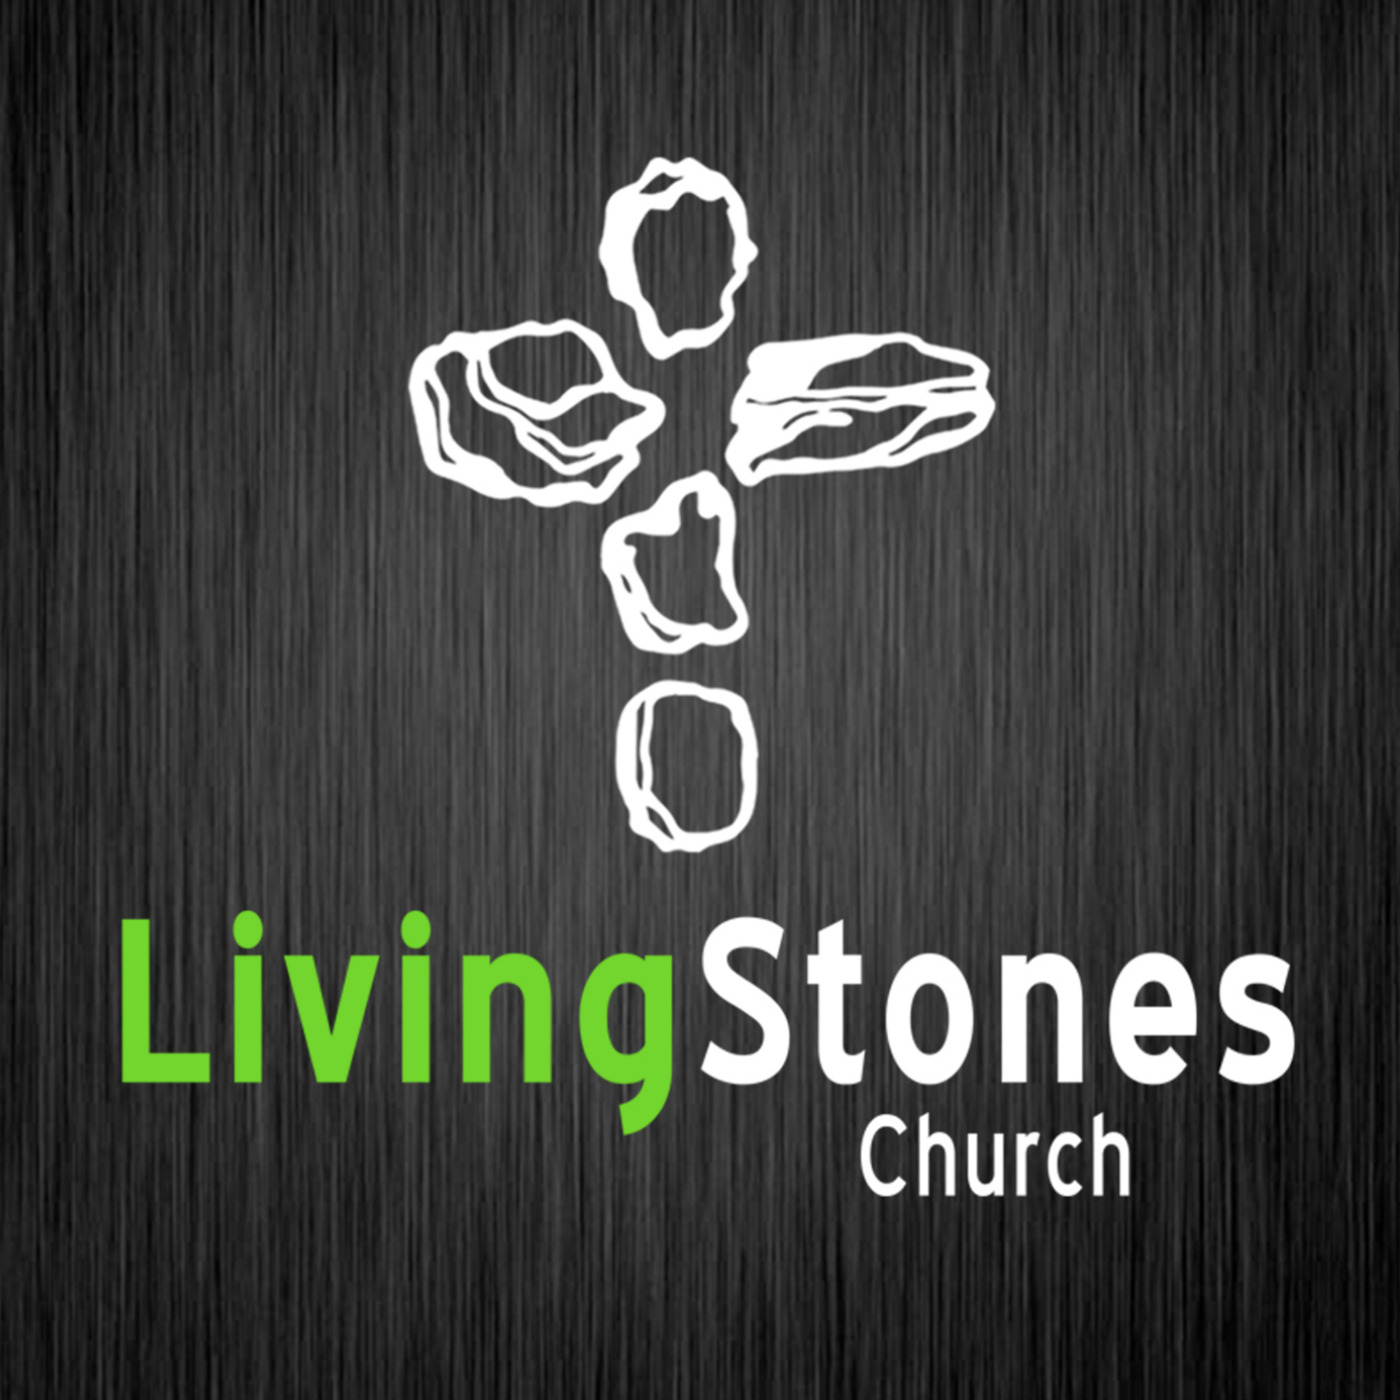 Living Stones Church - South Bend